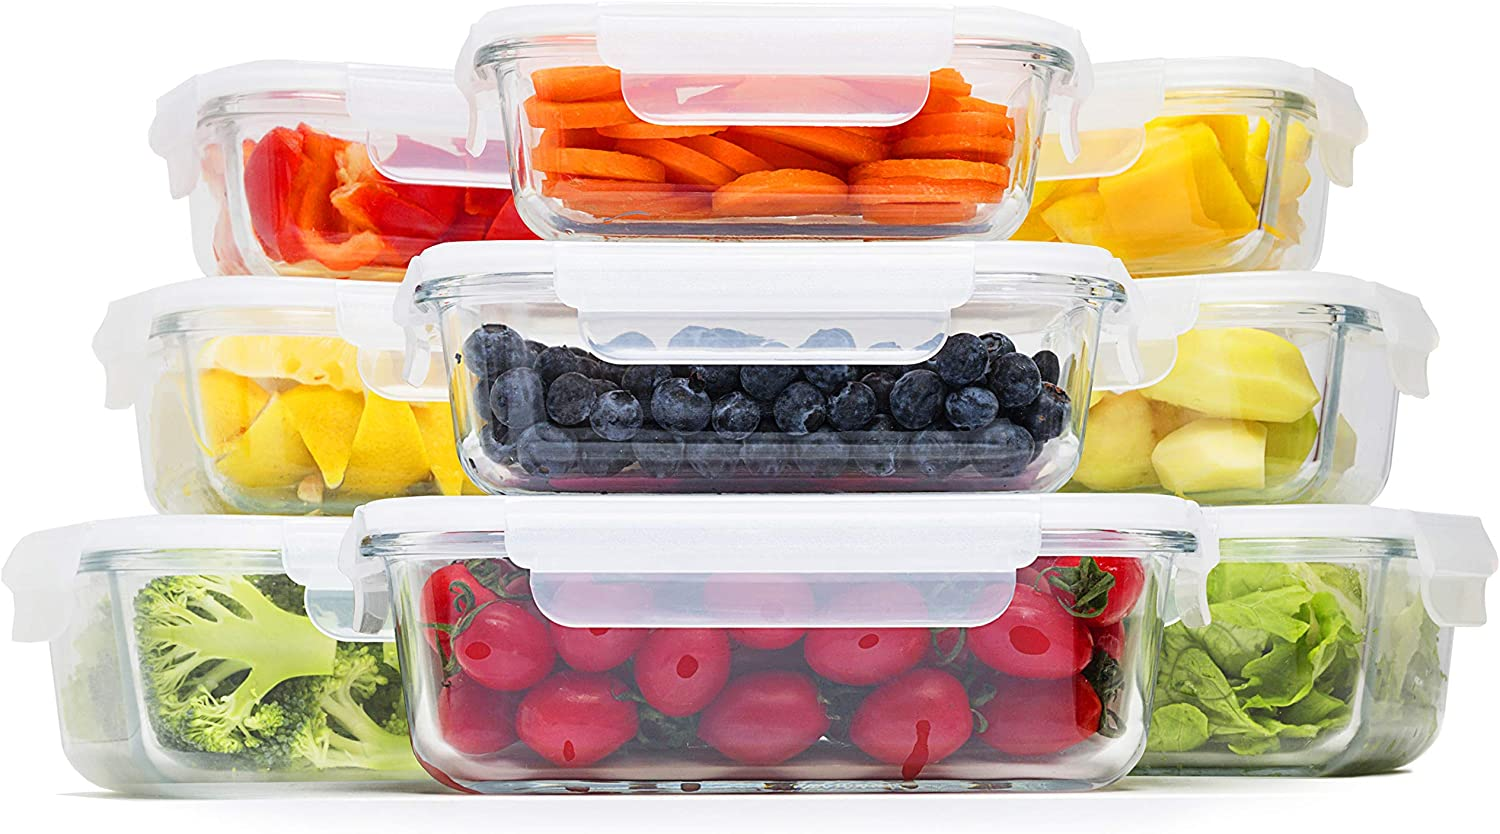 Coyacool Glass Food Storage Containers With Lids- Glass Meal Prep Containers with BPA-Free Lids 18 Pieces, 3 Different Sizes with Airtight Lock (13oz x 3, 24oz x 3, 35oz x 3)